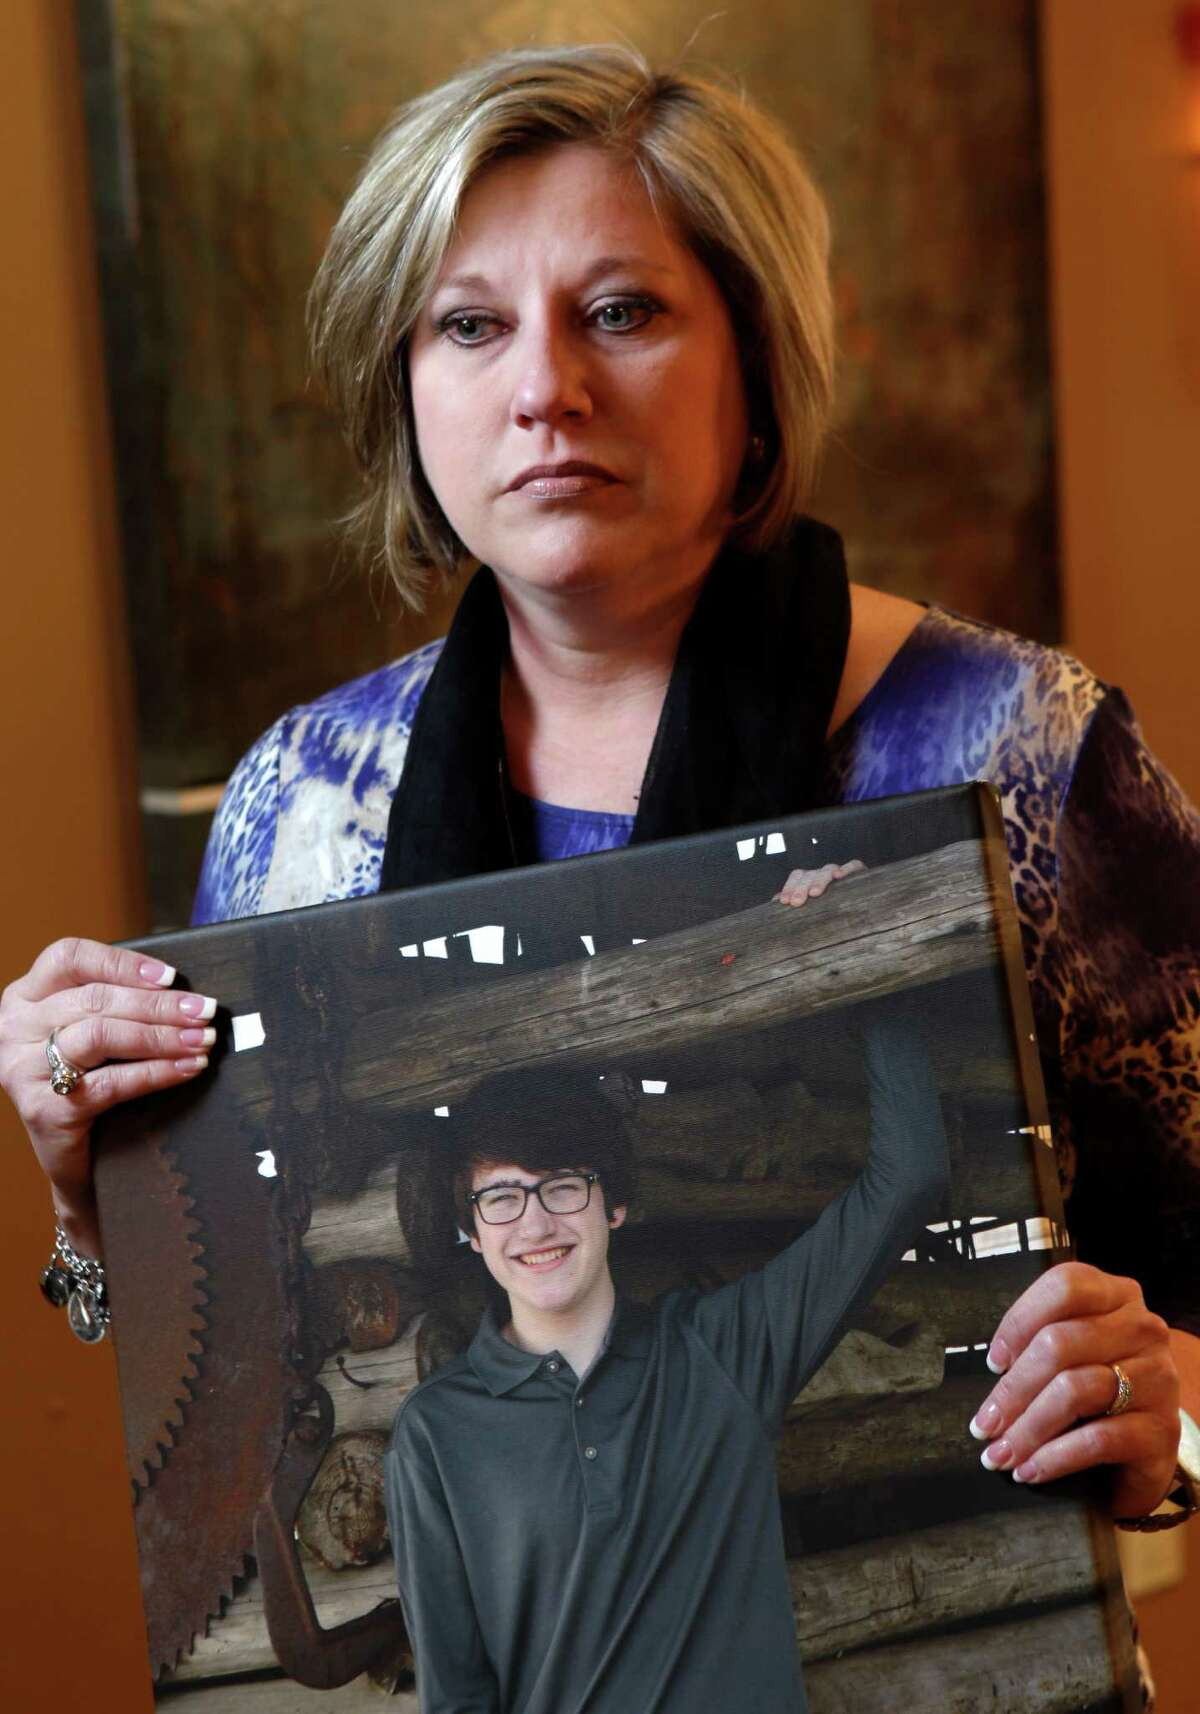 Traci Hobson, poses with a photo taken in December of her 16-year-old son Grant Hobson, who died Feb. 7 after taking synthetic LSD.